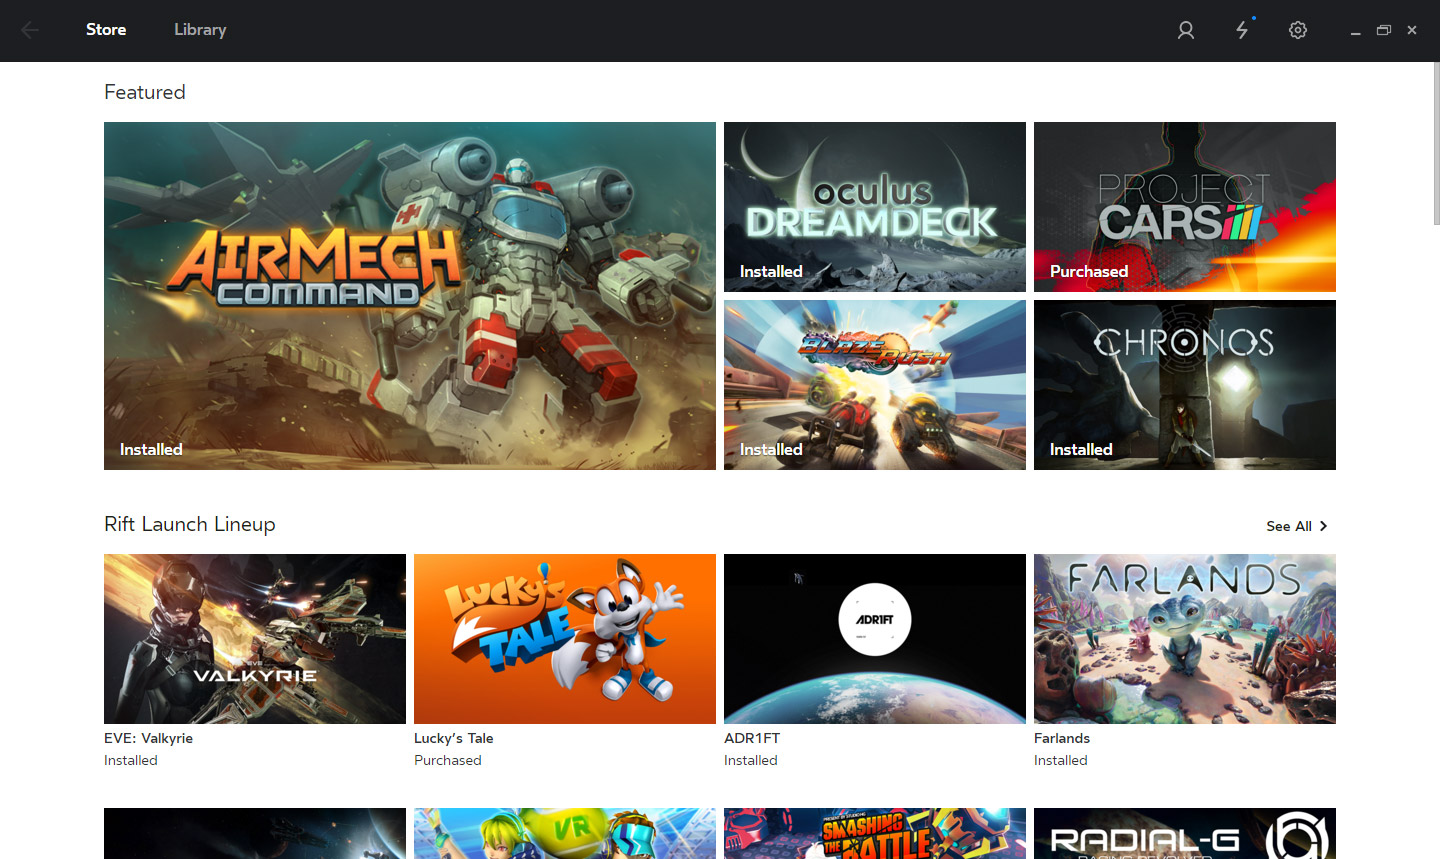 You Can Access Oculus Home with DK2, Play Free and Paid Content